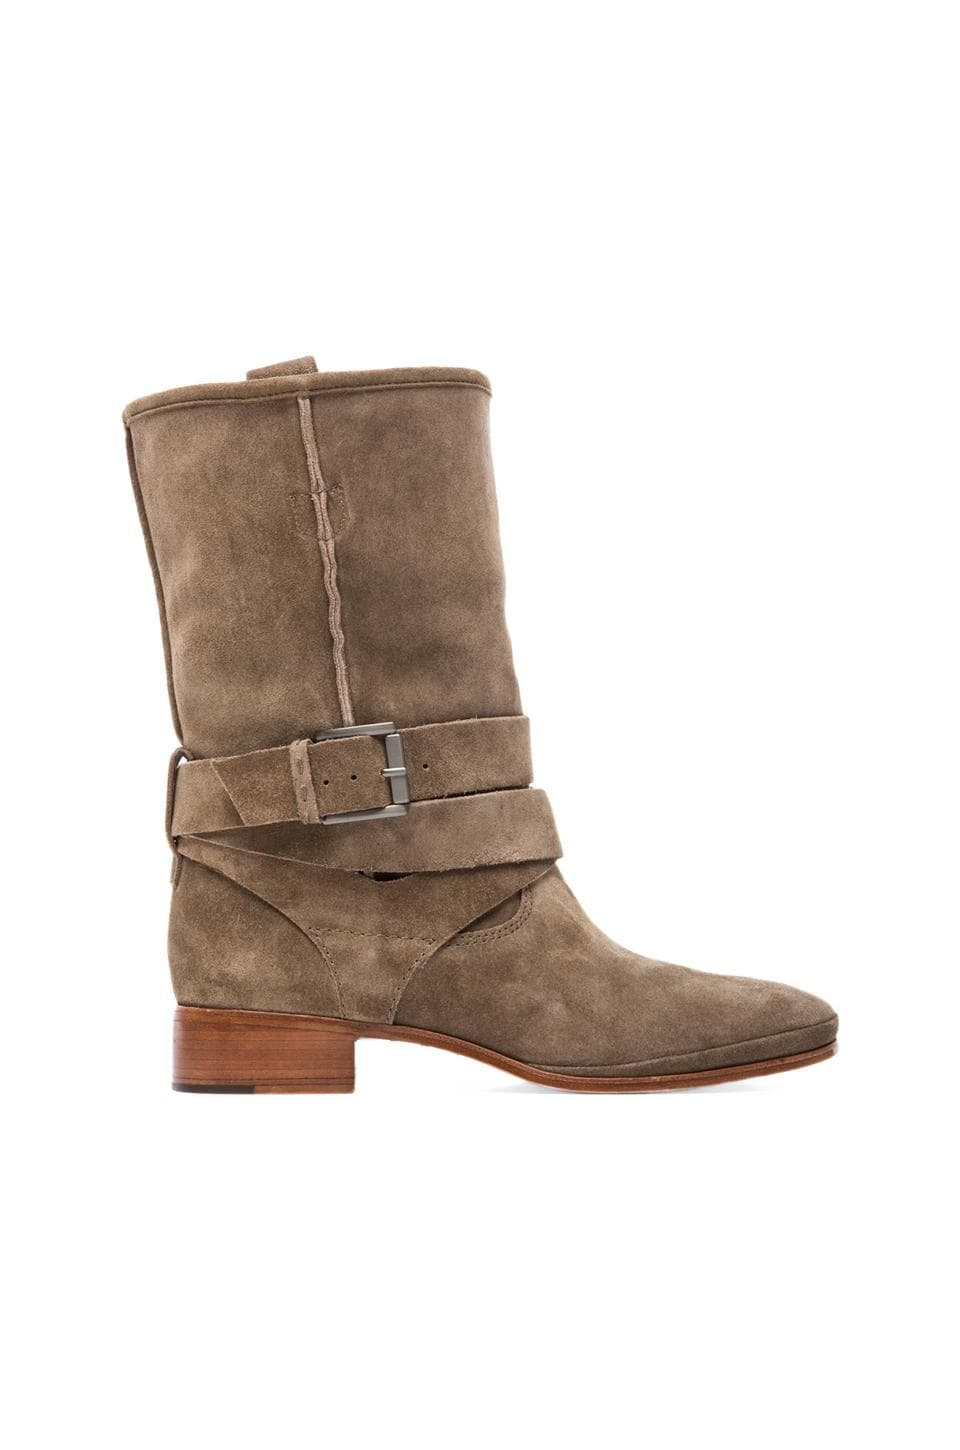 Belle by Sigerson Morrison Who Moto Bootie in Alpaca